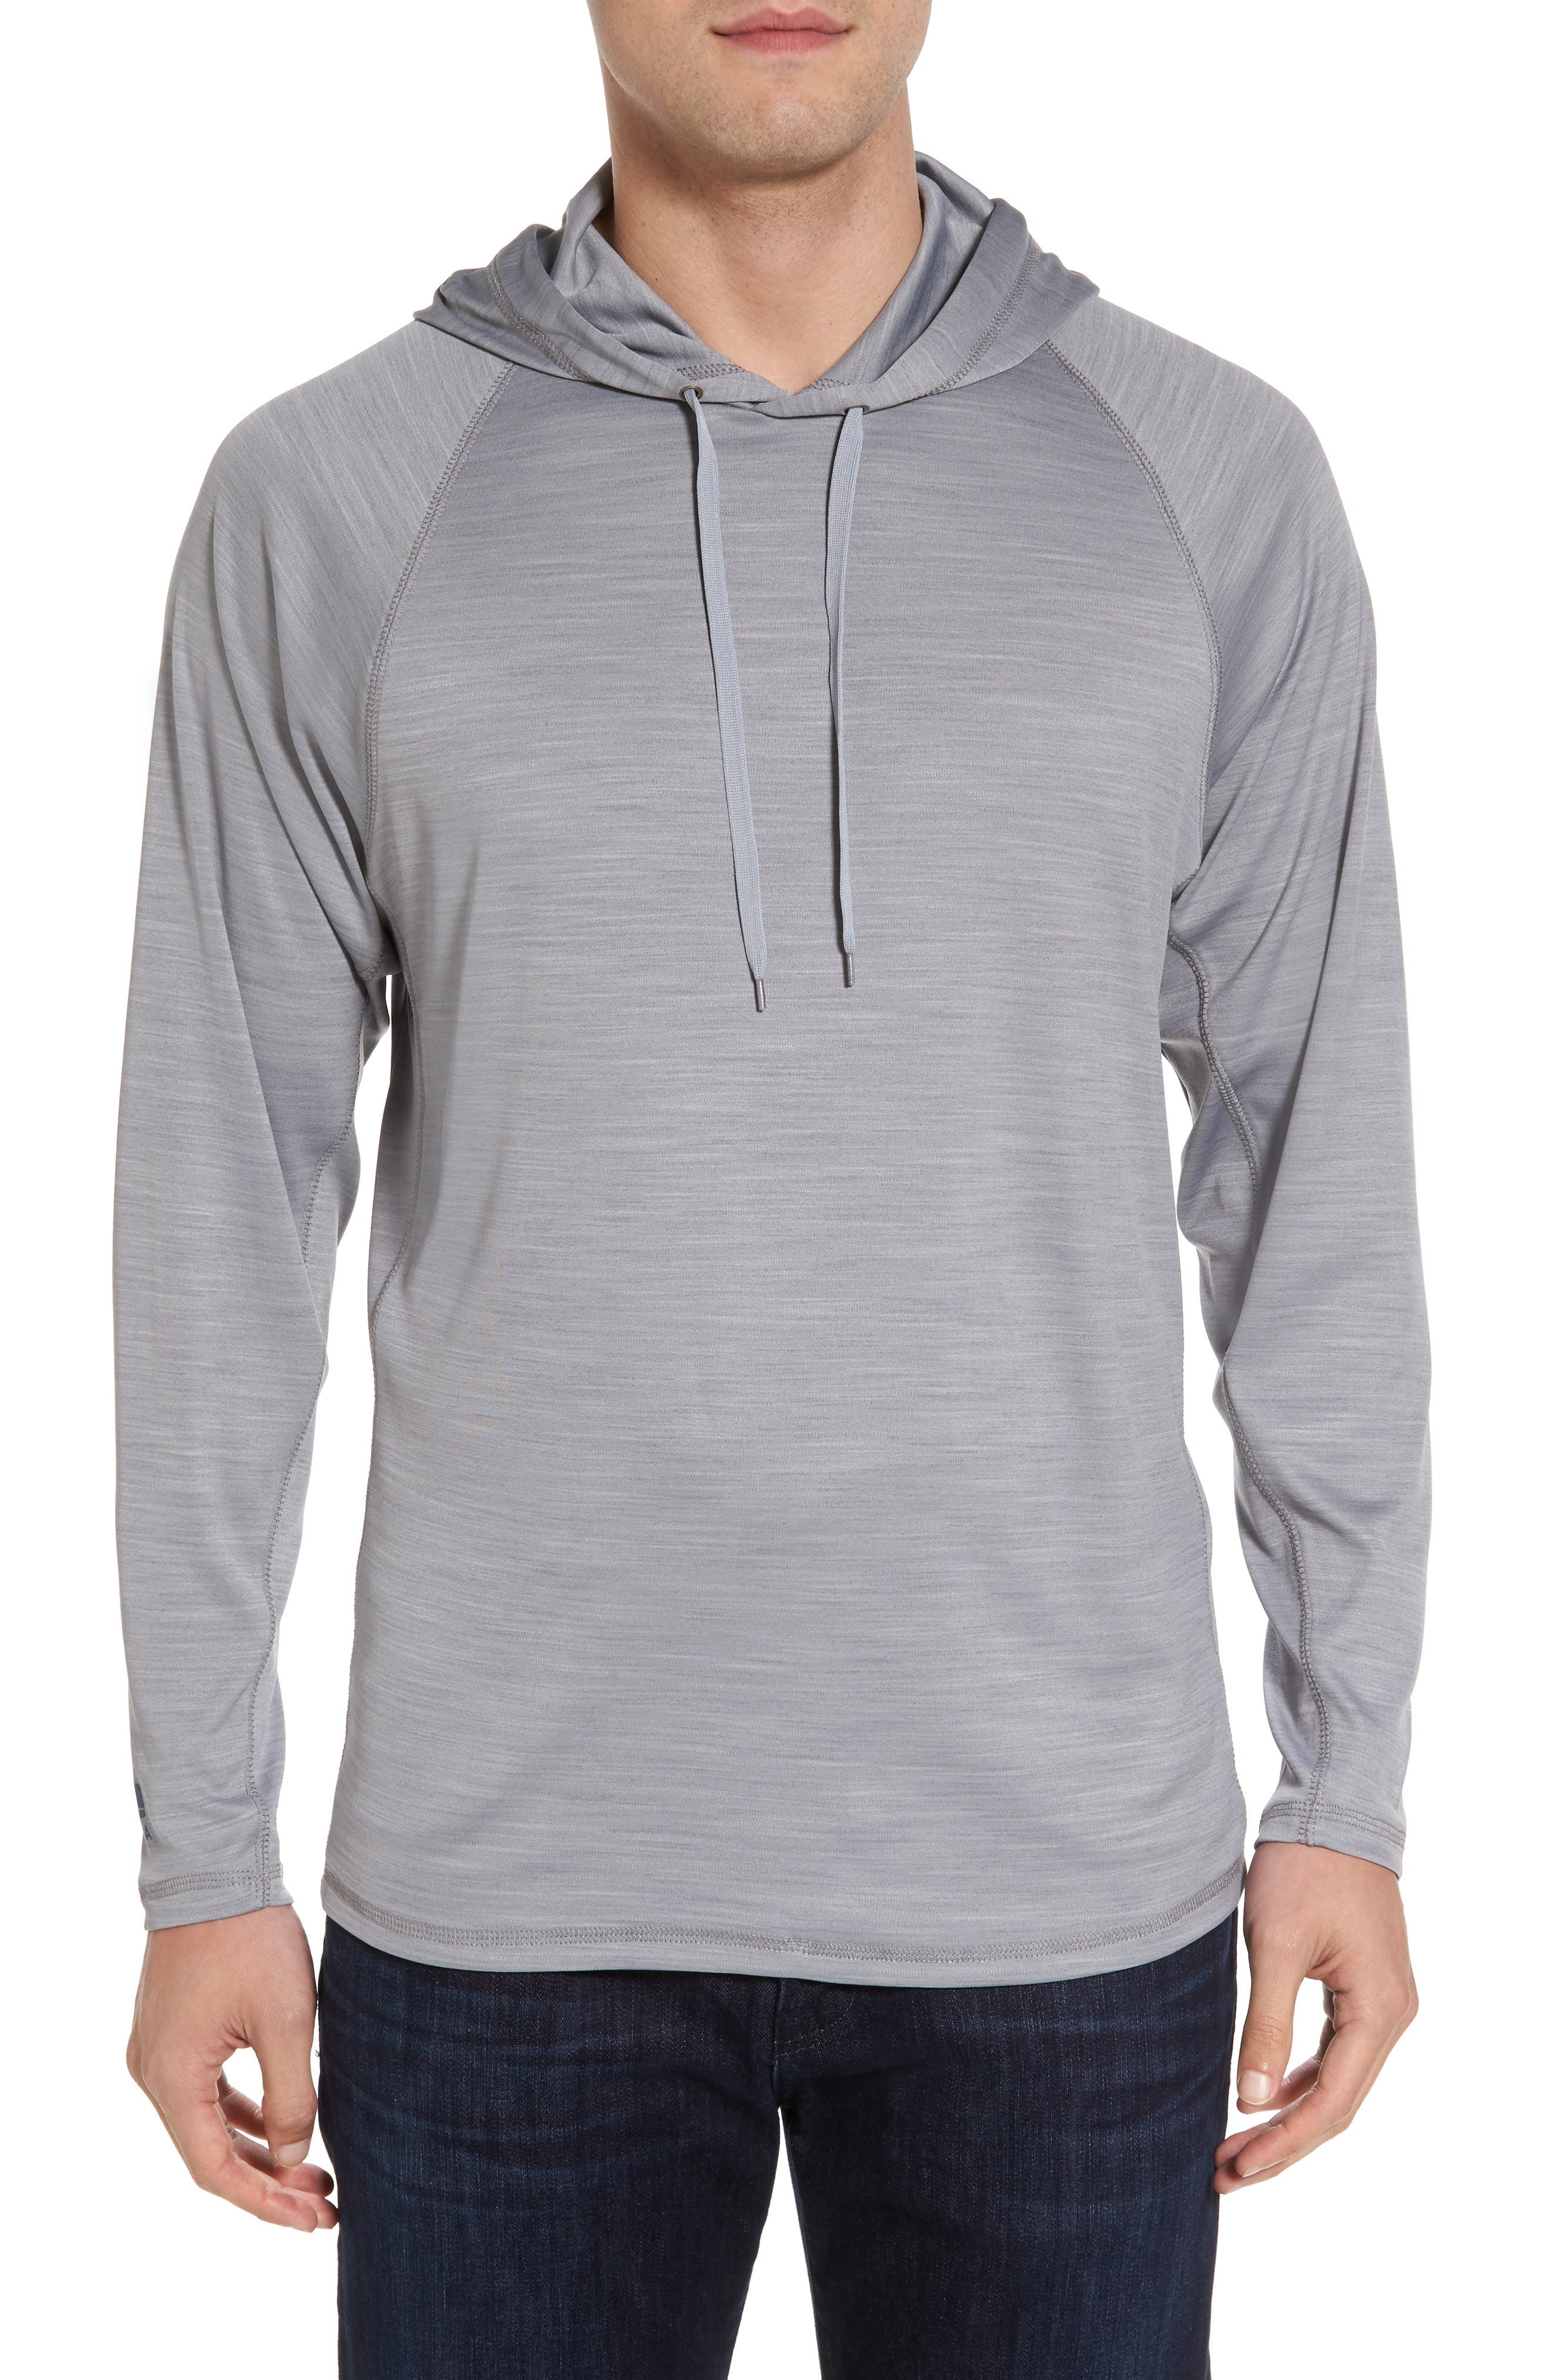 Undercover Hooded Long Sleeve Performance T-Shirt,                             Main thumbnail 1, color,                             020